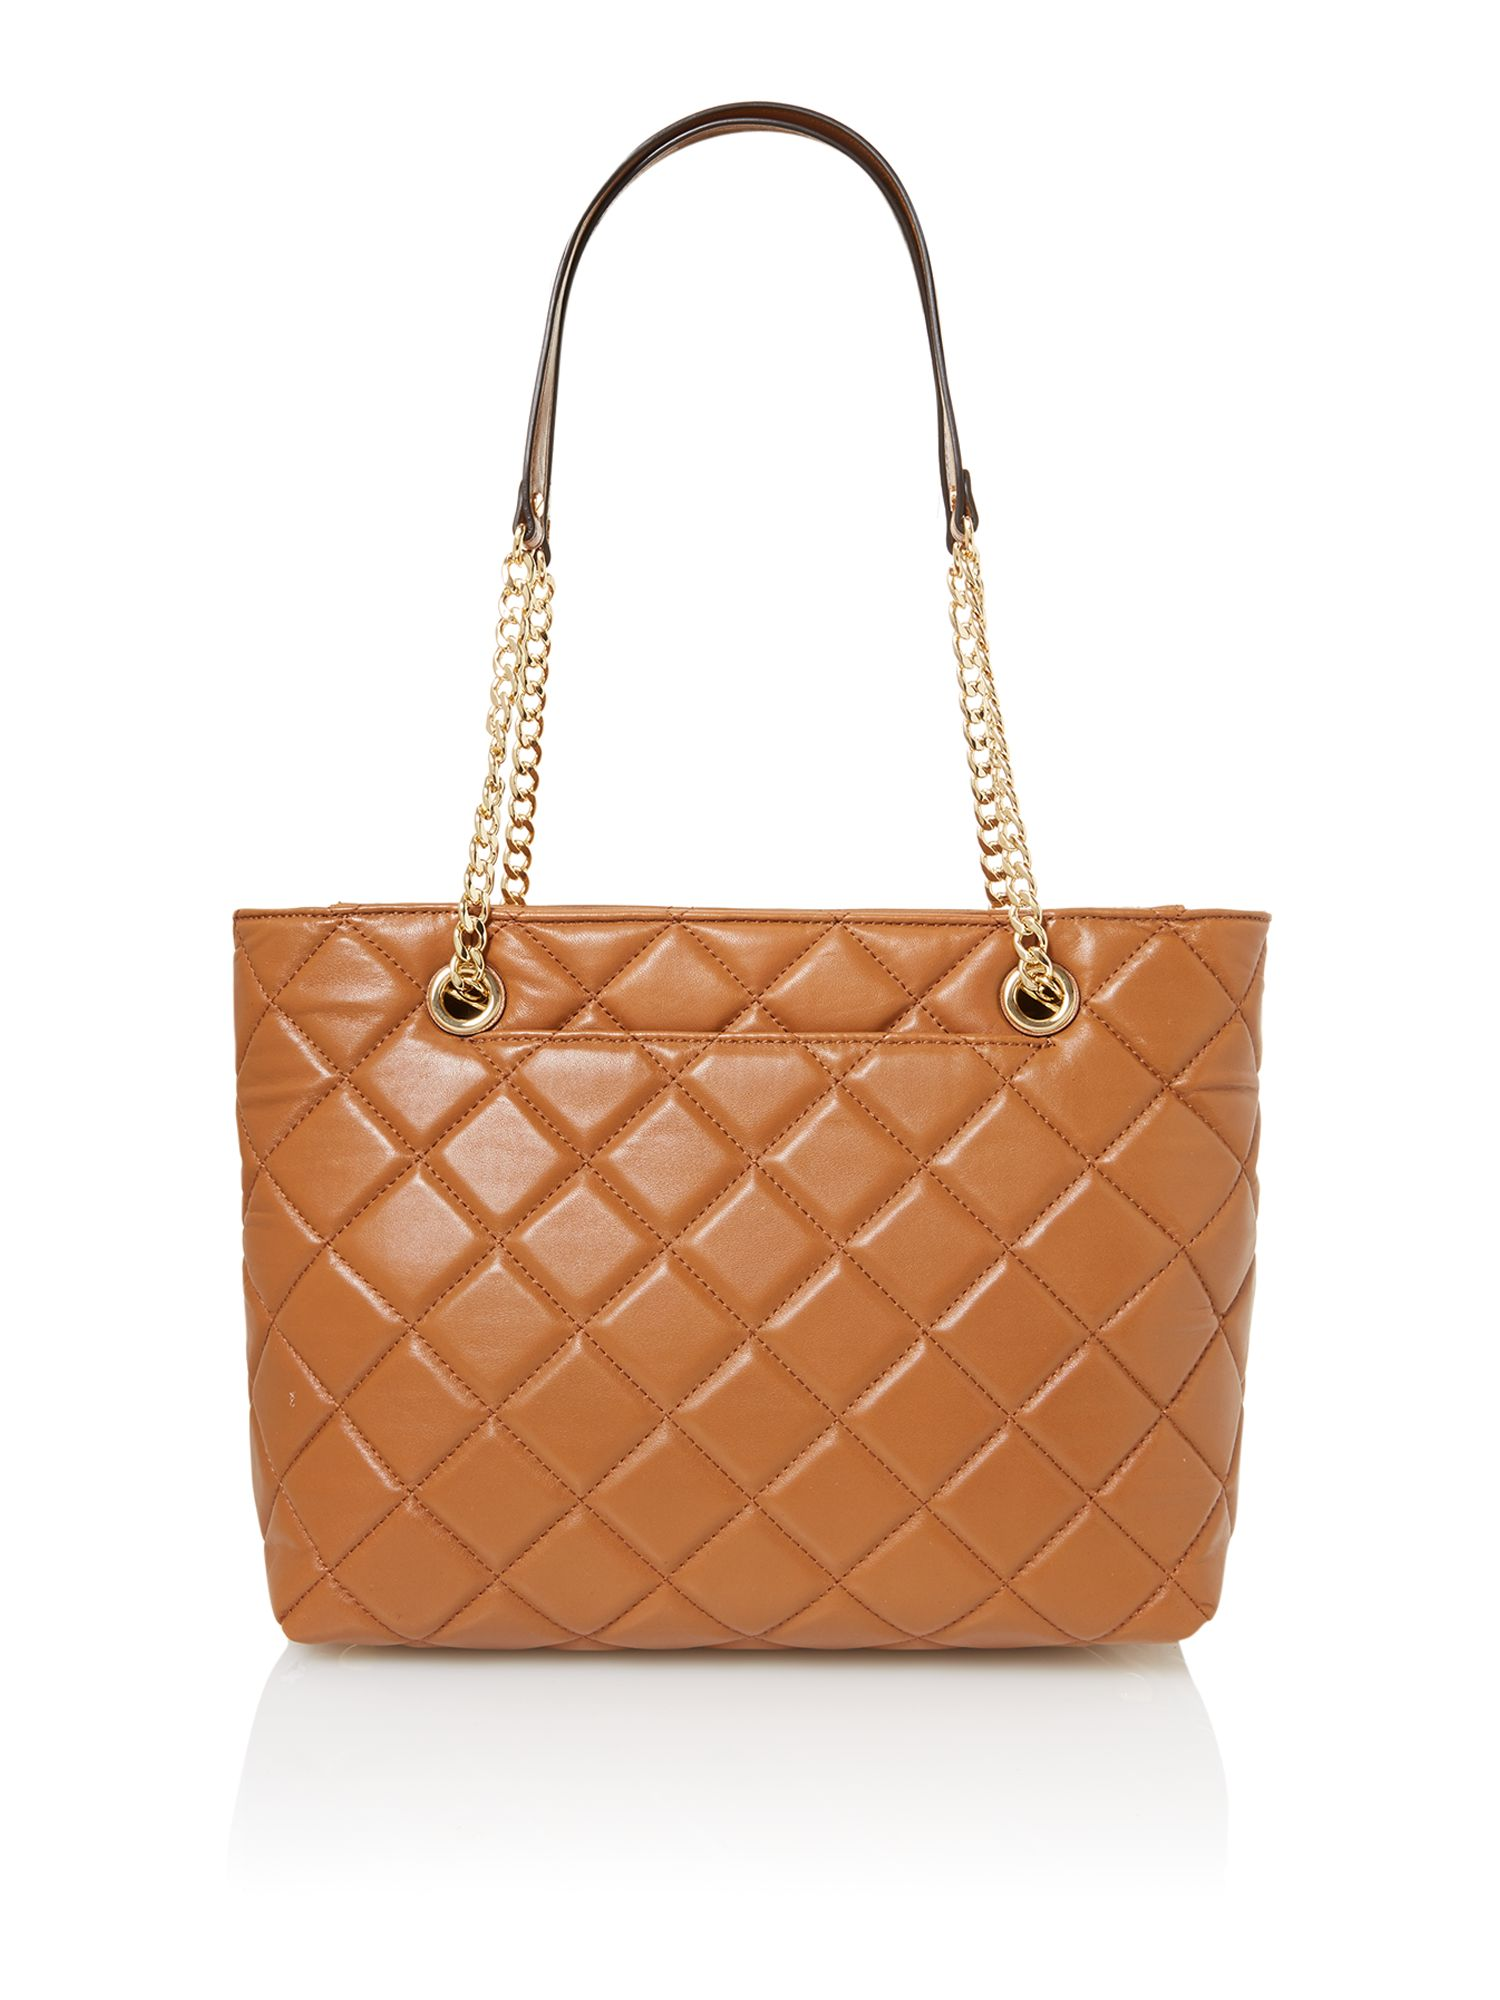 Fulton tan quilt tote bag